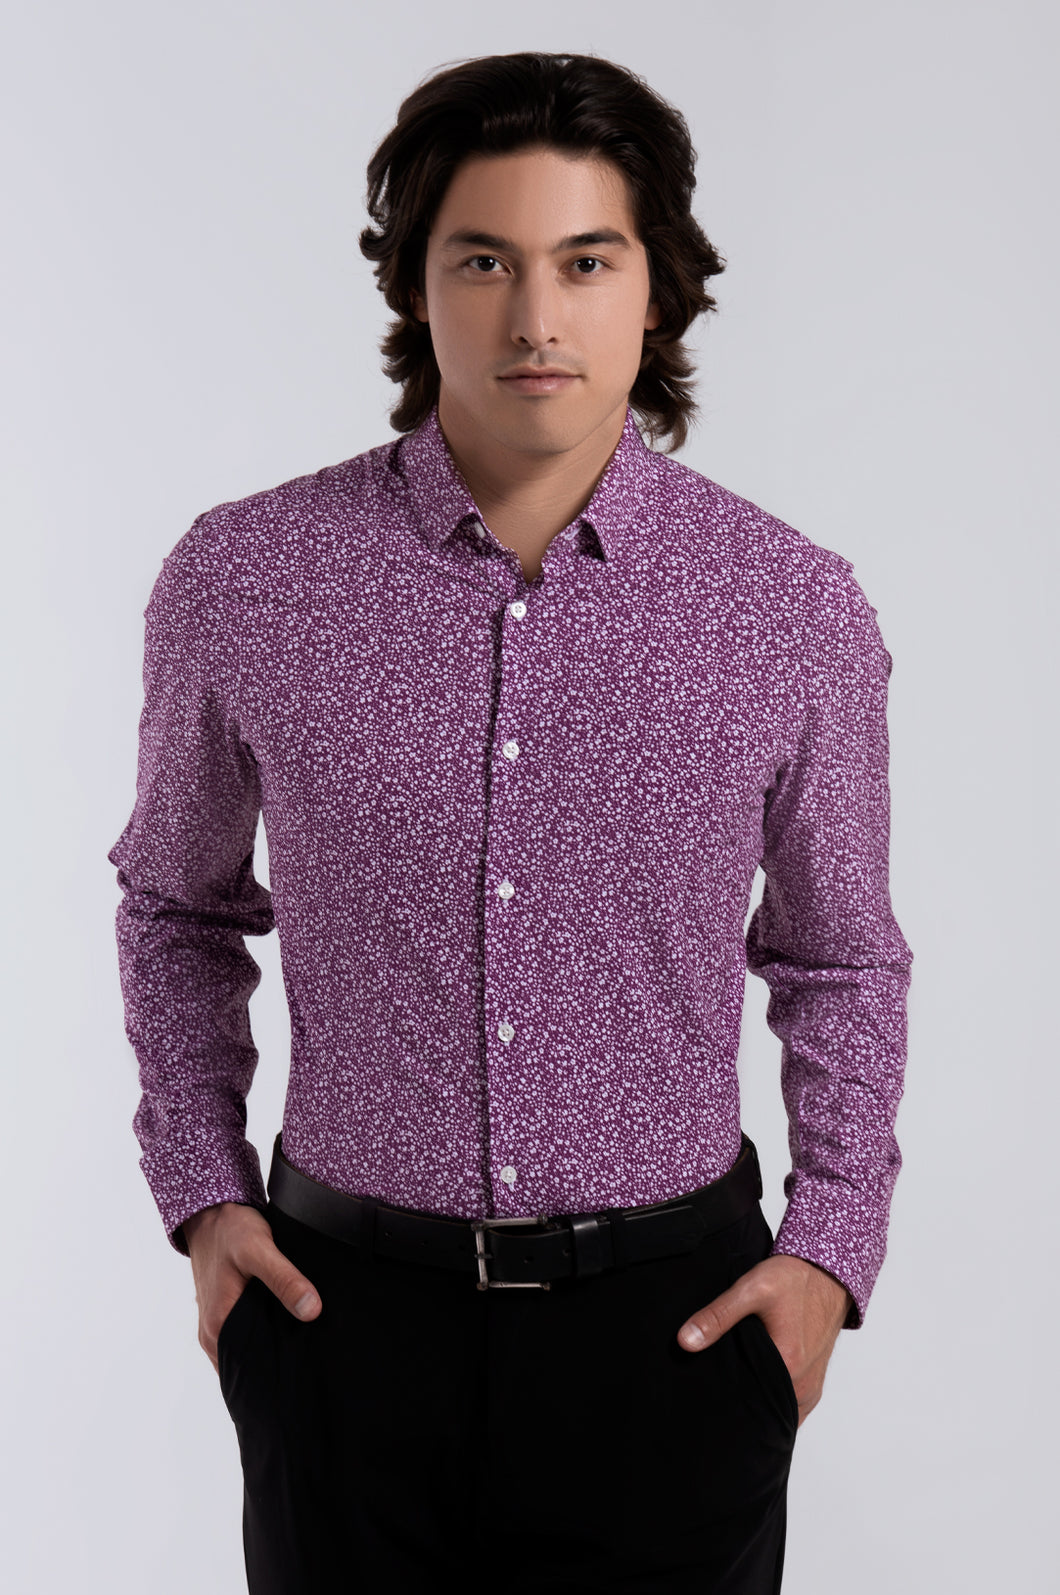 Men's Long Sleeve Dress Shirt - Plum Floral